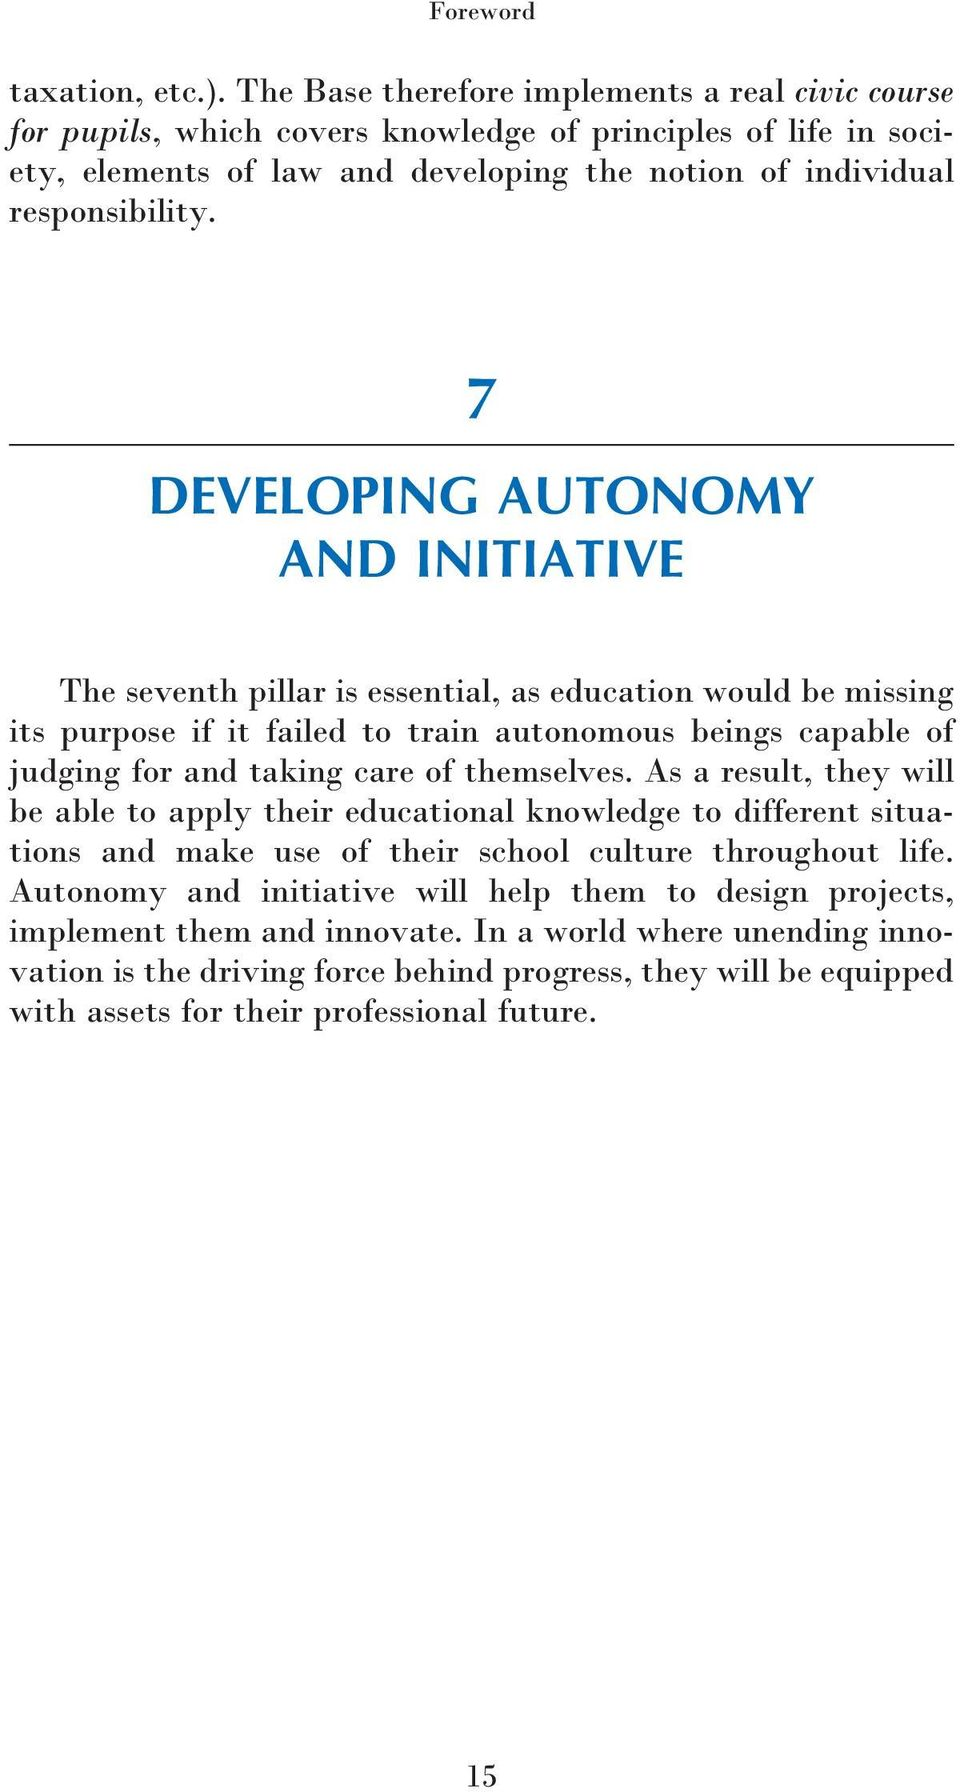 7 DEVELOPING AUTONOMY AND INITIATIVE The seventh pillar is essential, as education would be missing its purpose if it failed to train autonomous beings capable of judging for and taking care of